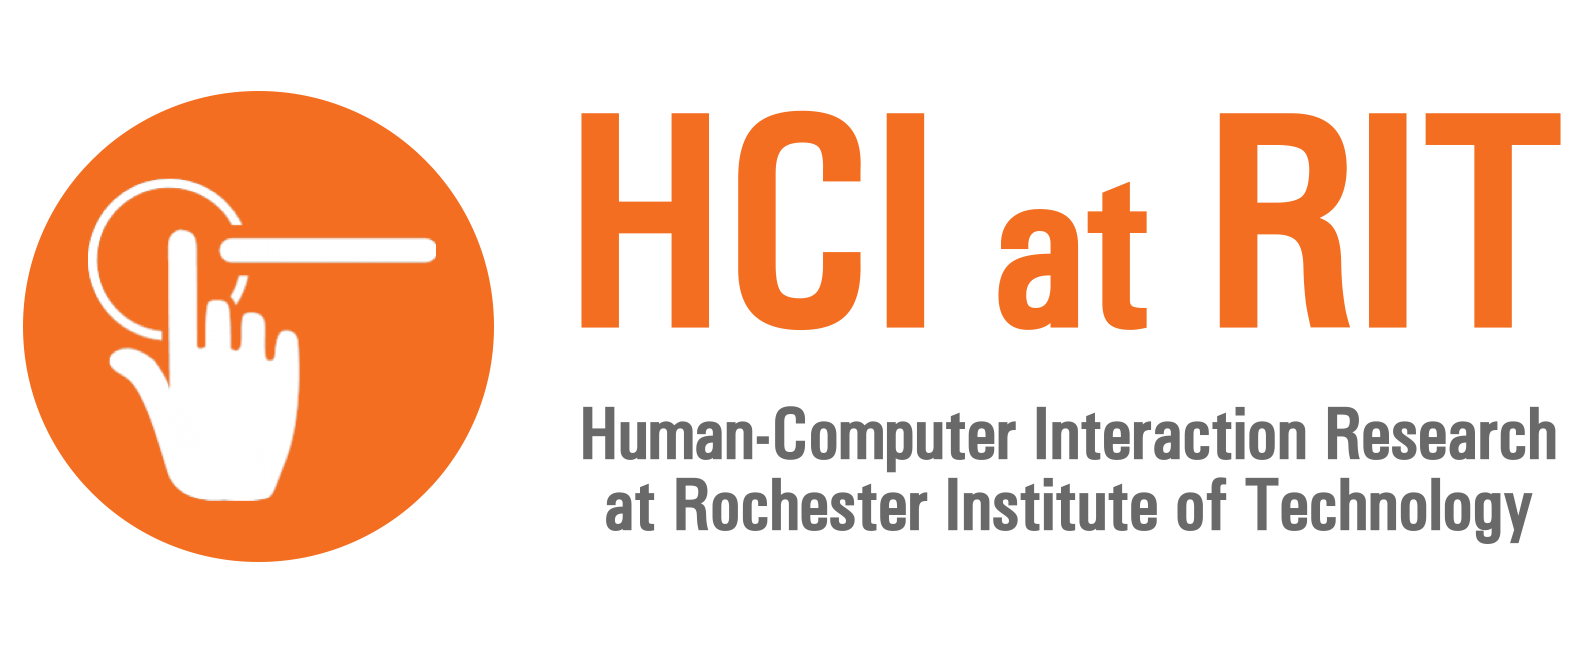 HCI at RIT: Research Community